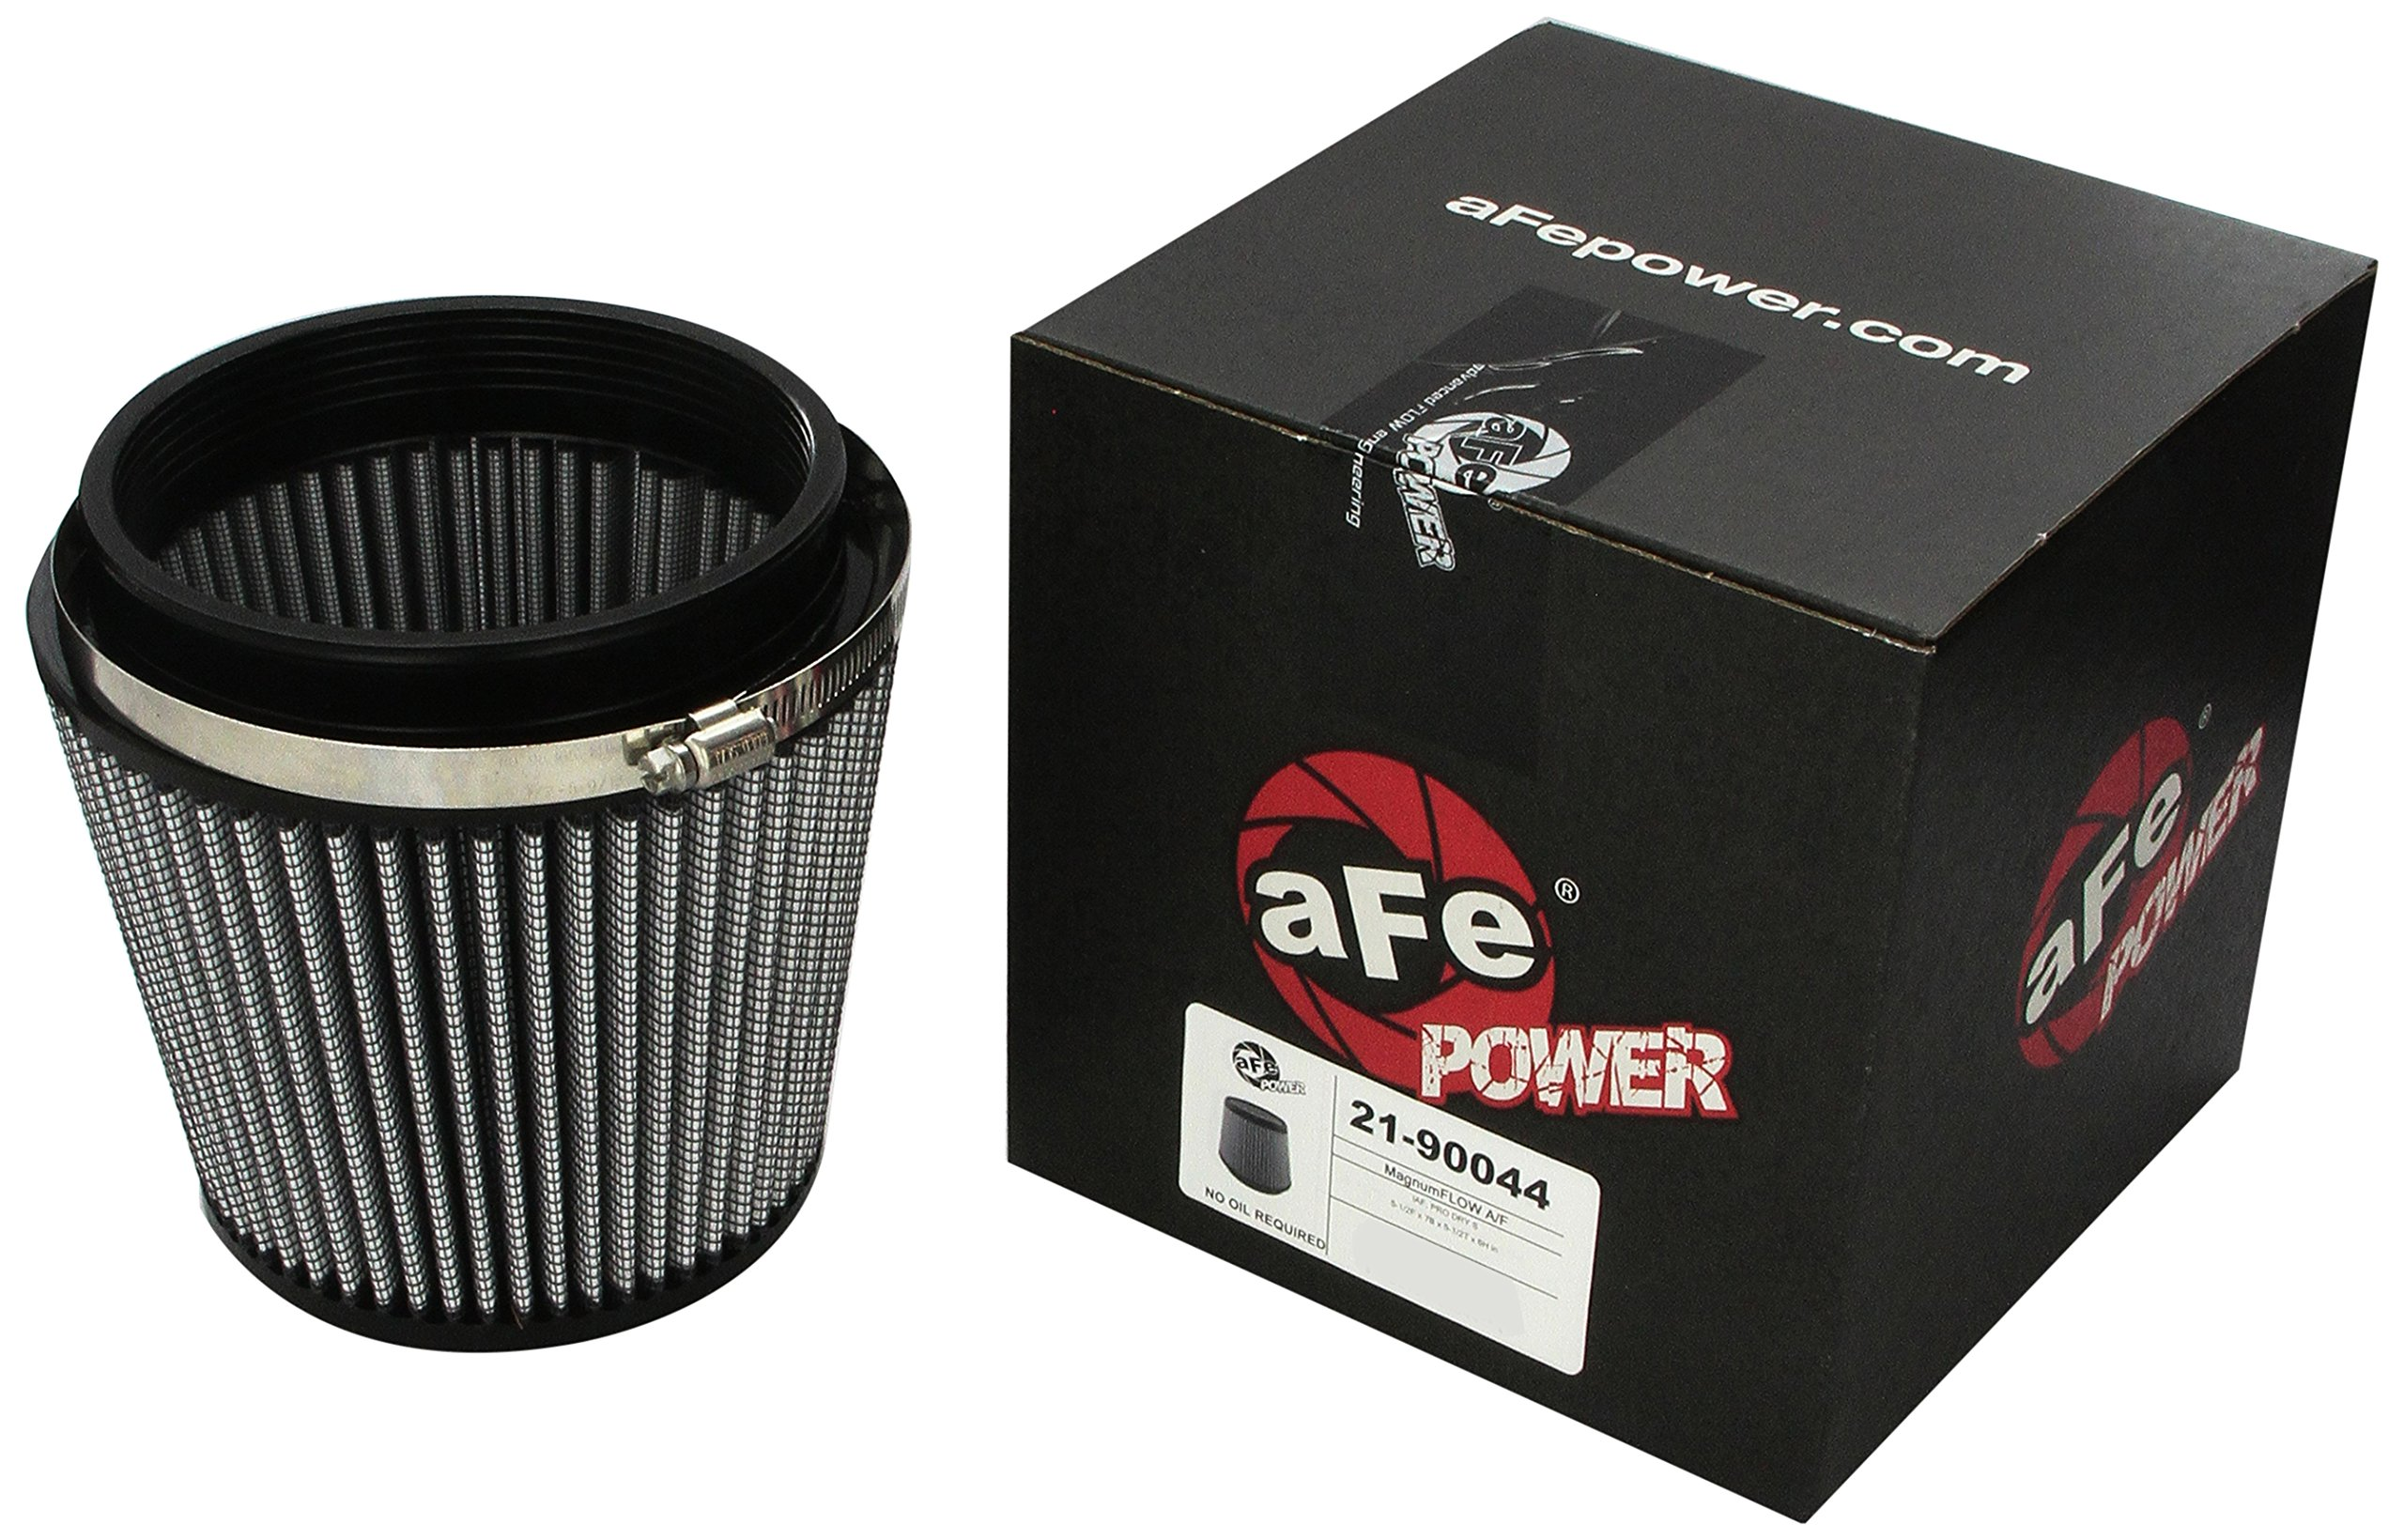 aFe 21-90044 Universal Clamp On Filter